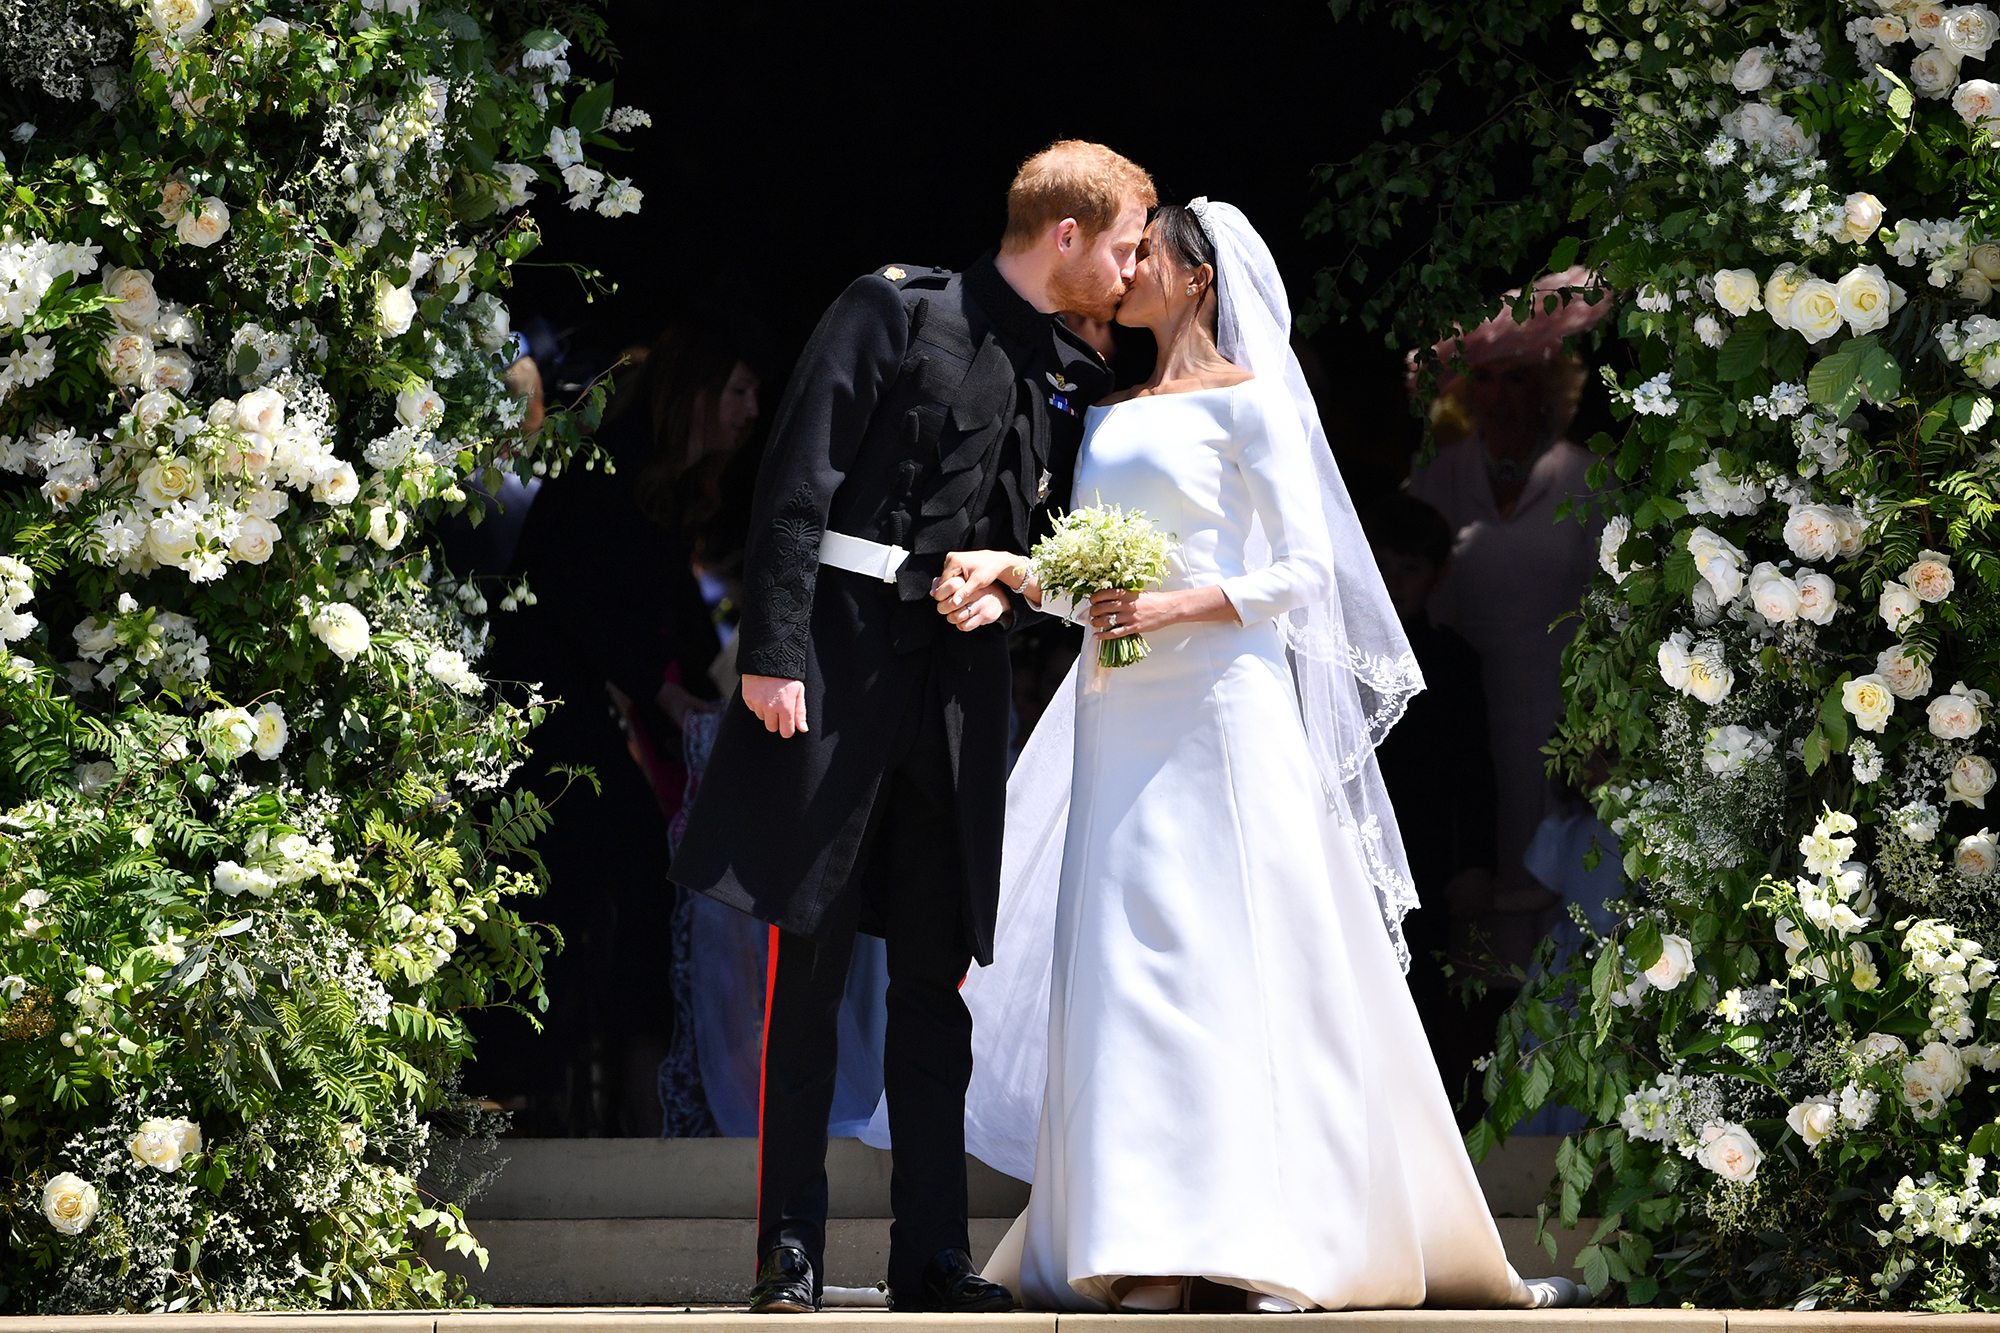 Prince Harry and Duchess Meghan's 1st Year of Marriage - Harry and Meghan exchanged vows at St George's Chapel at Windsor Castle in England on May 19, 2018.